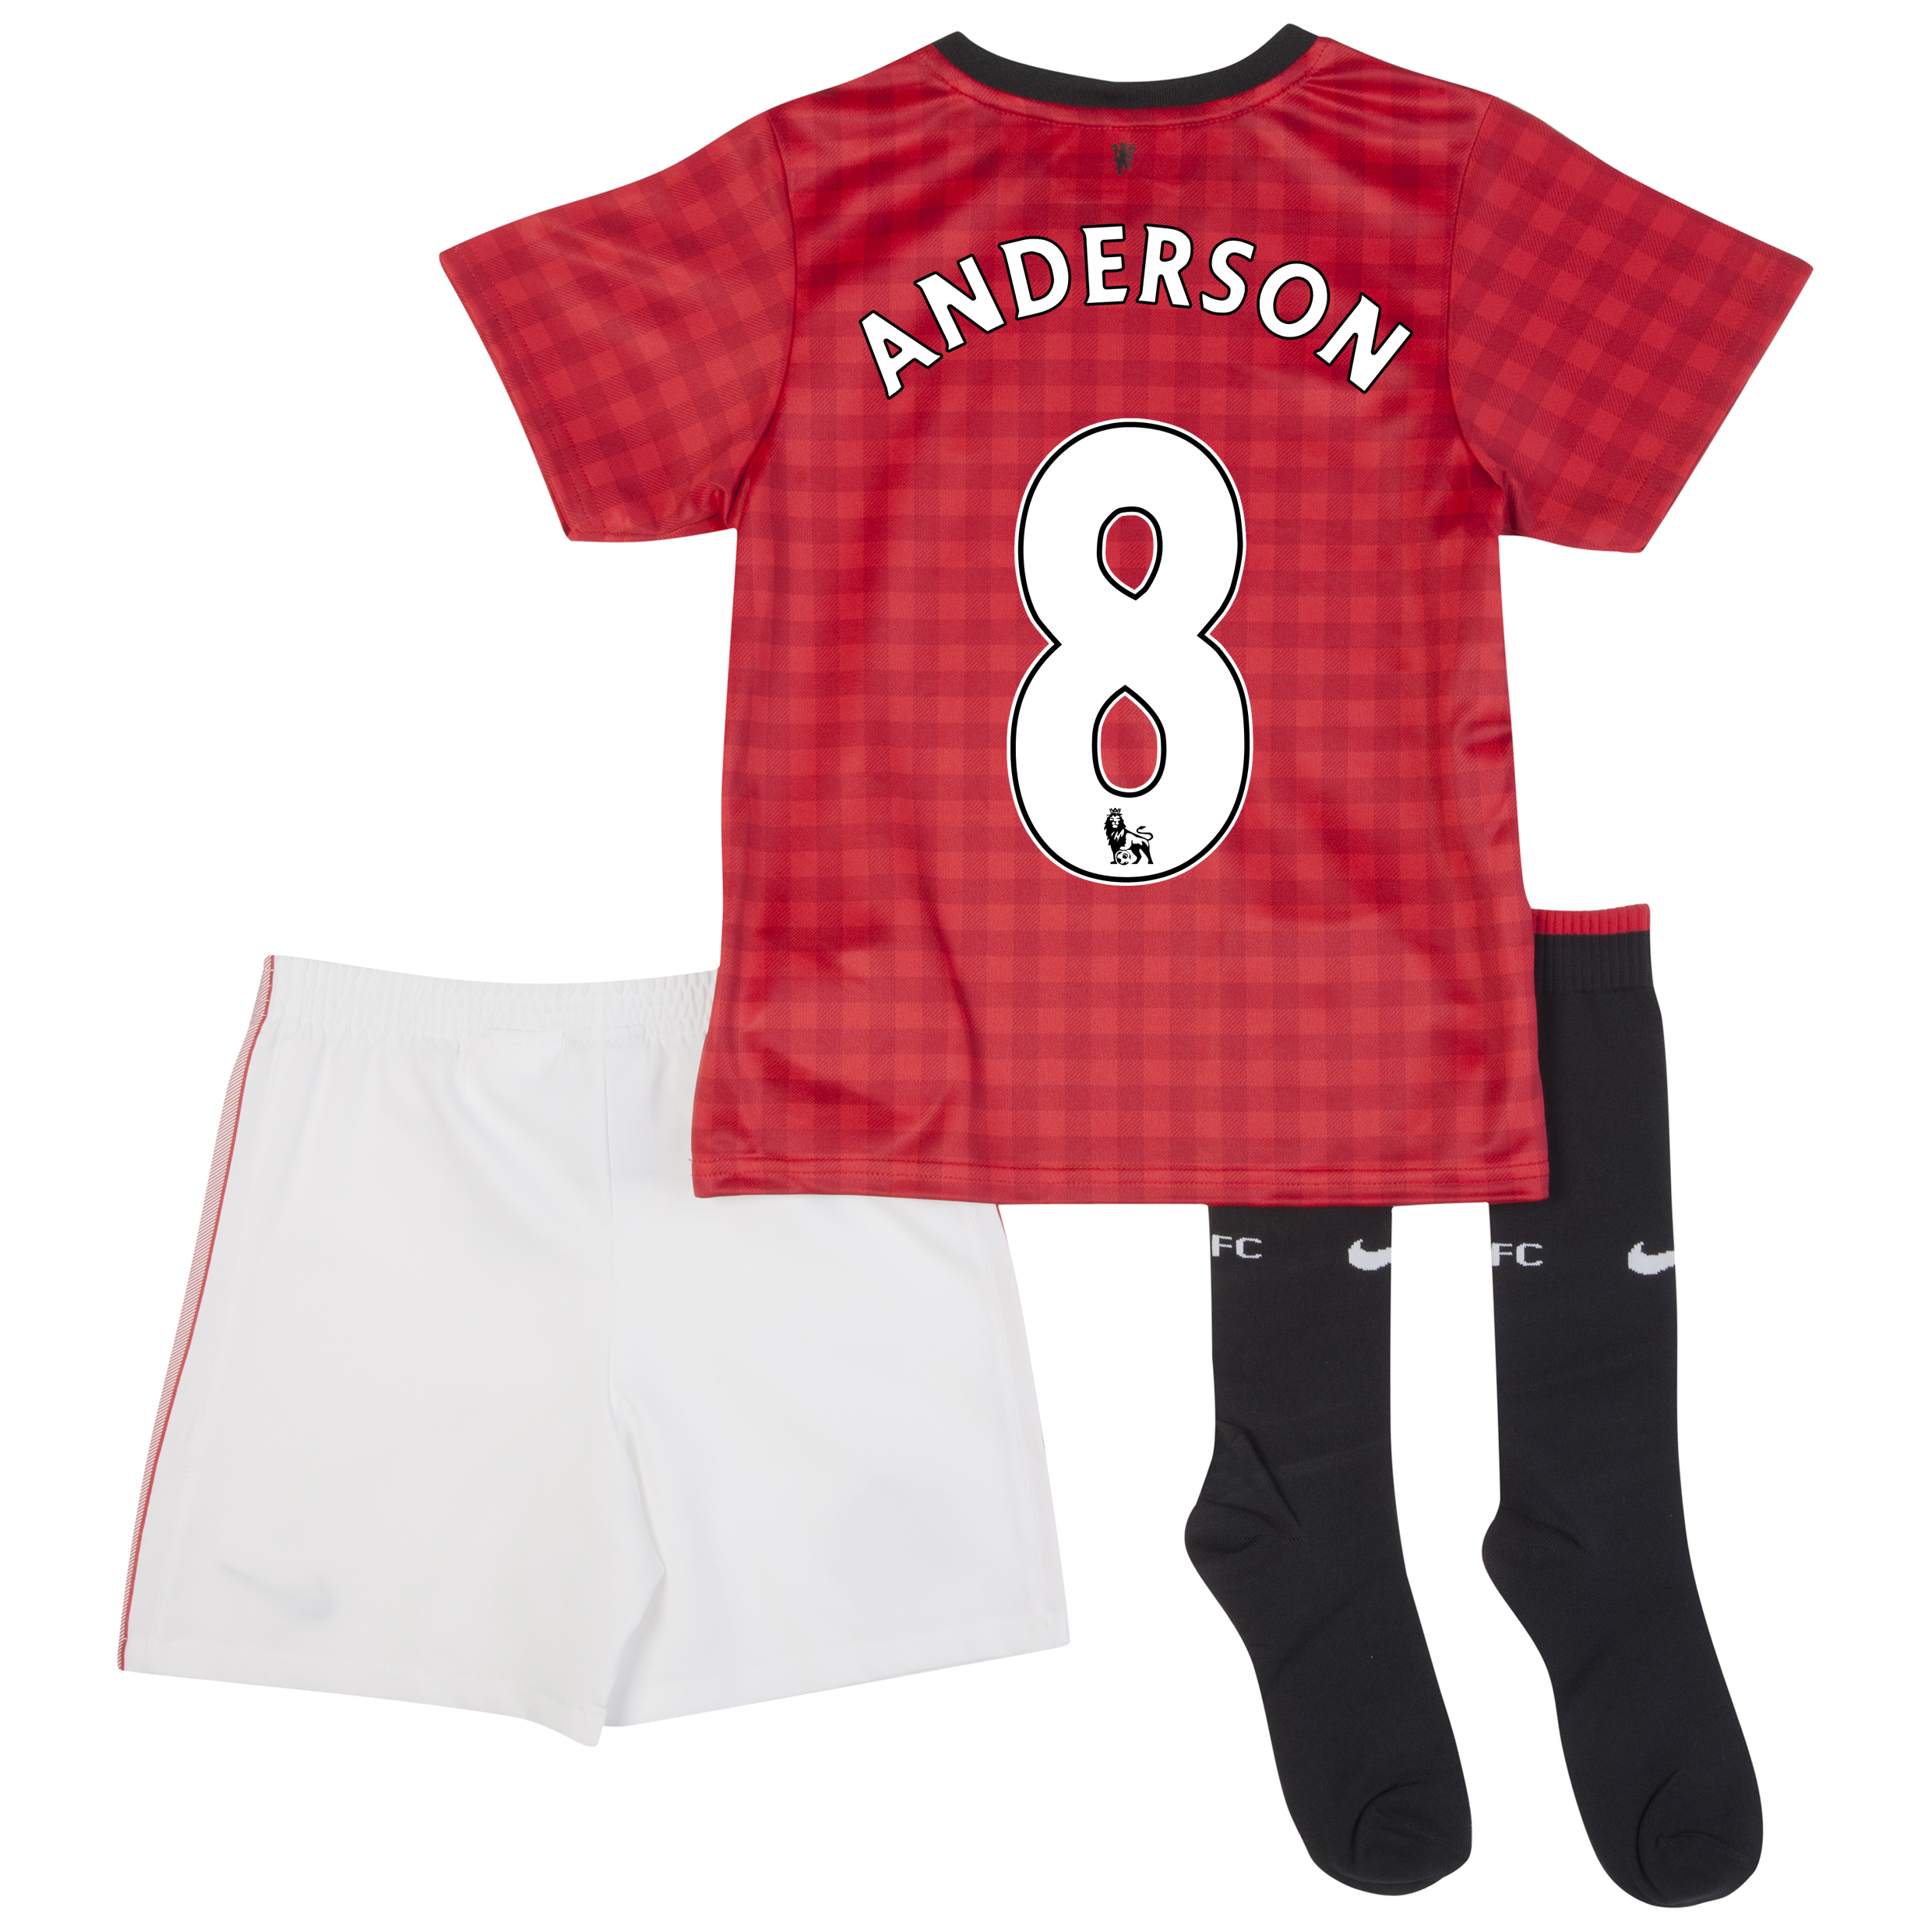 Manchester United Home Kit 2012/13 -  Little Boys with Anderson 8 printing